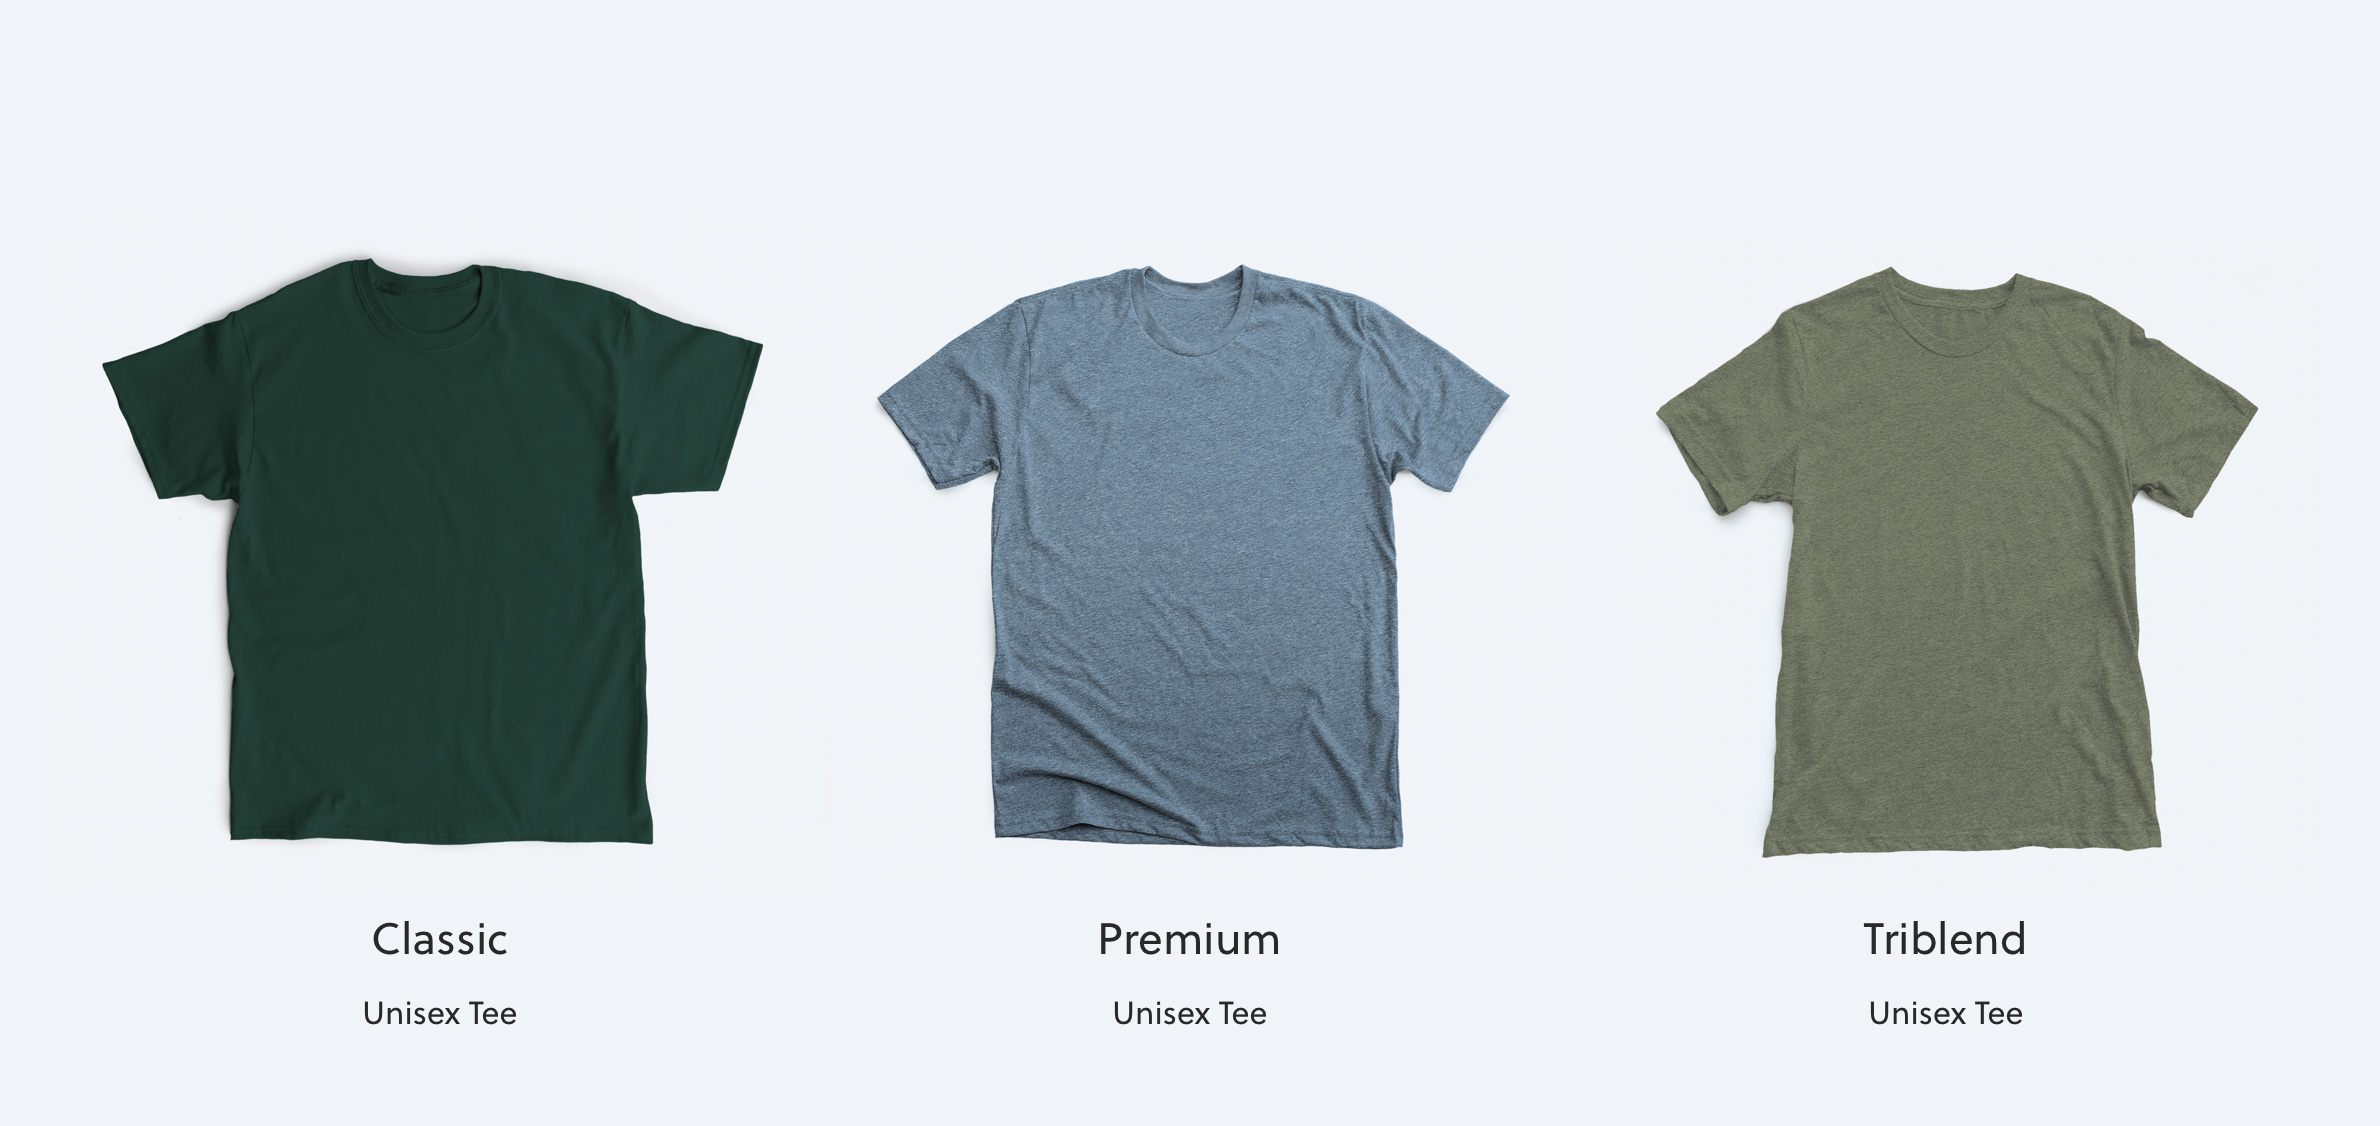 How our classic, premium, and triblend shirts all compare to each other.